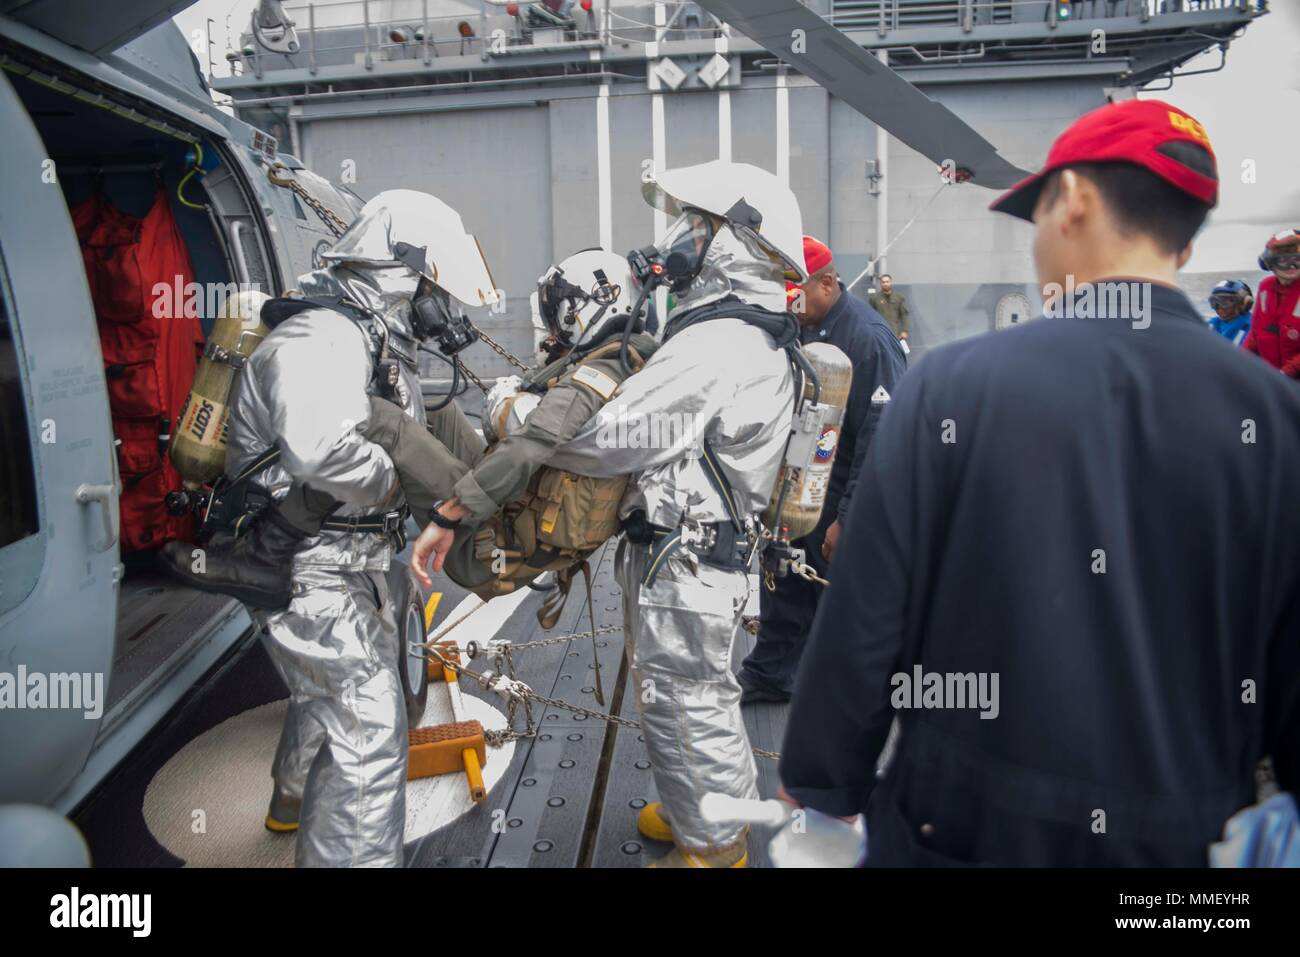 """171030-N-DO281-133  ATLANTIC OCEAN (Oct. 30, 2017) Damage Controlman 1st Class Robert Gamble and Damage Controlman 2nd Class Steven Maldonado remove Naval Aircrewman (Tactical Helicopter) 3rd Class Stephen Loftin,  assigned to the """"Vipers"""" of Helicopter Maritime Strike Squadron (HSM) 48, from a MH-60R Sea Hawk helicopter  aboard the guided-missile cruiser USS Monterey (CG 61). Monterey is deployed in support of maritime security operations in the U.S. 5th and 6th fleet area of operations. (U.S. Navy photo by Mass Communication Specialist Seaman Trey Fowler/Released) Stock Photo"""